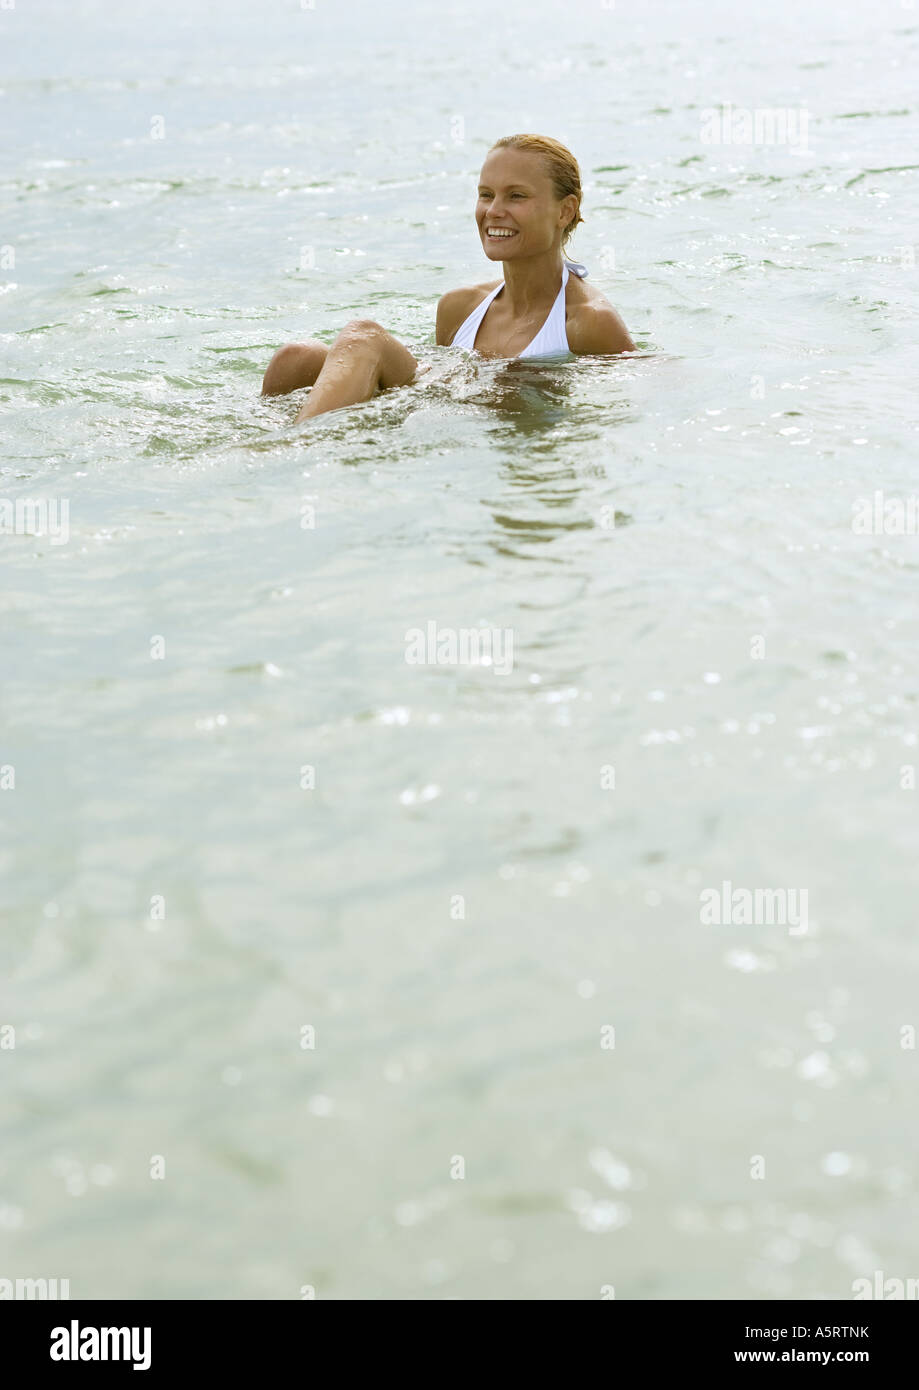 Woman sitting in shallow water - Stock Image